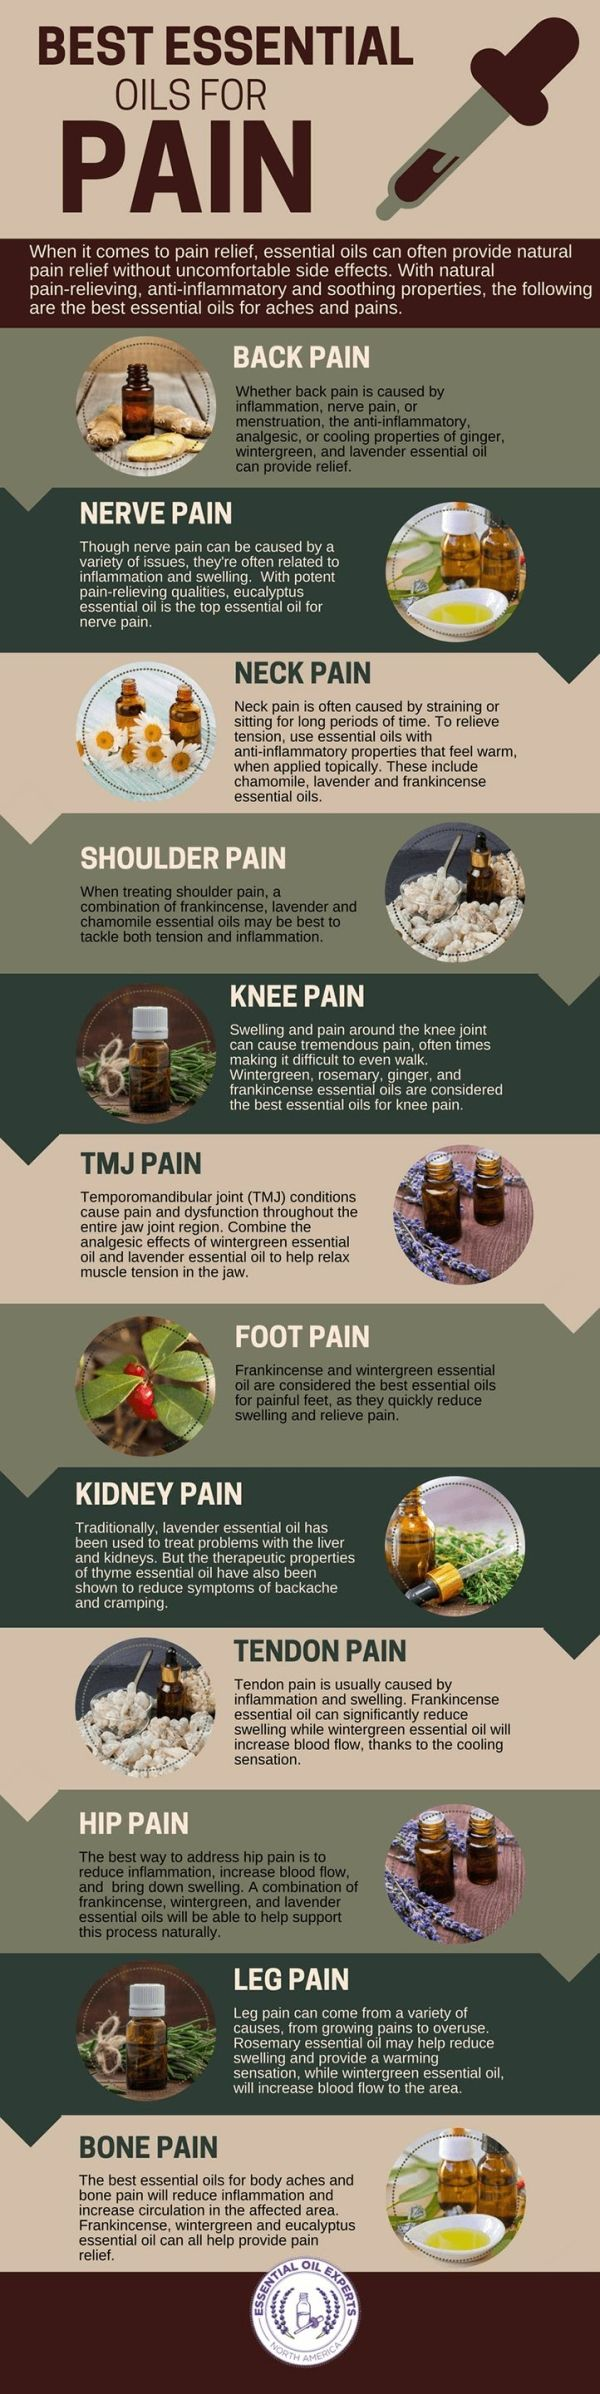 best essential oils images by nancy moore on pinterest